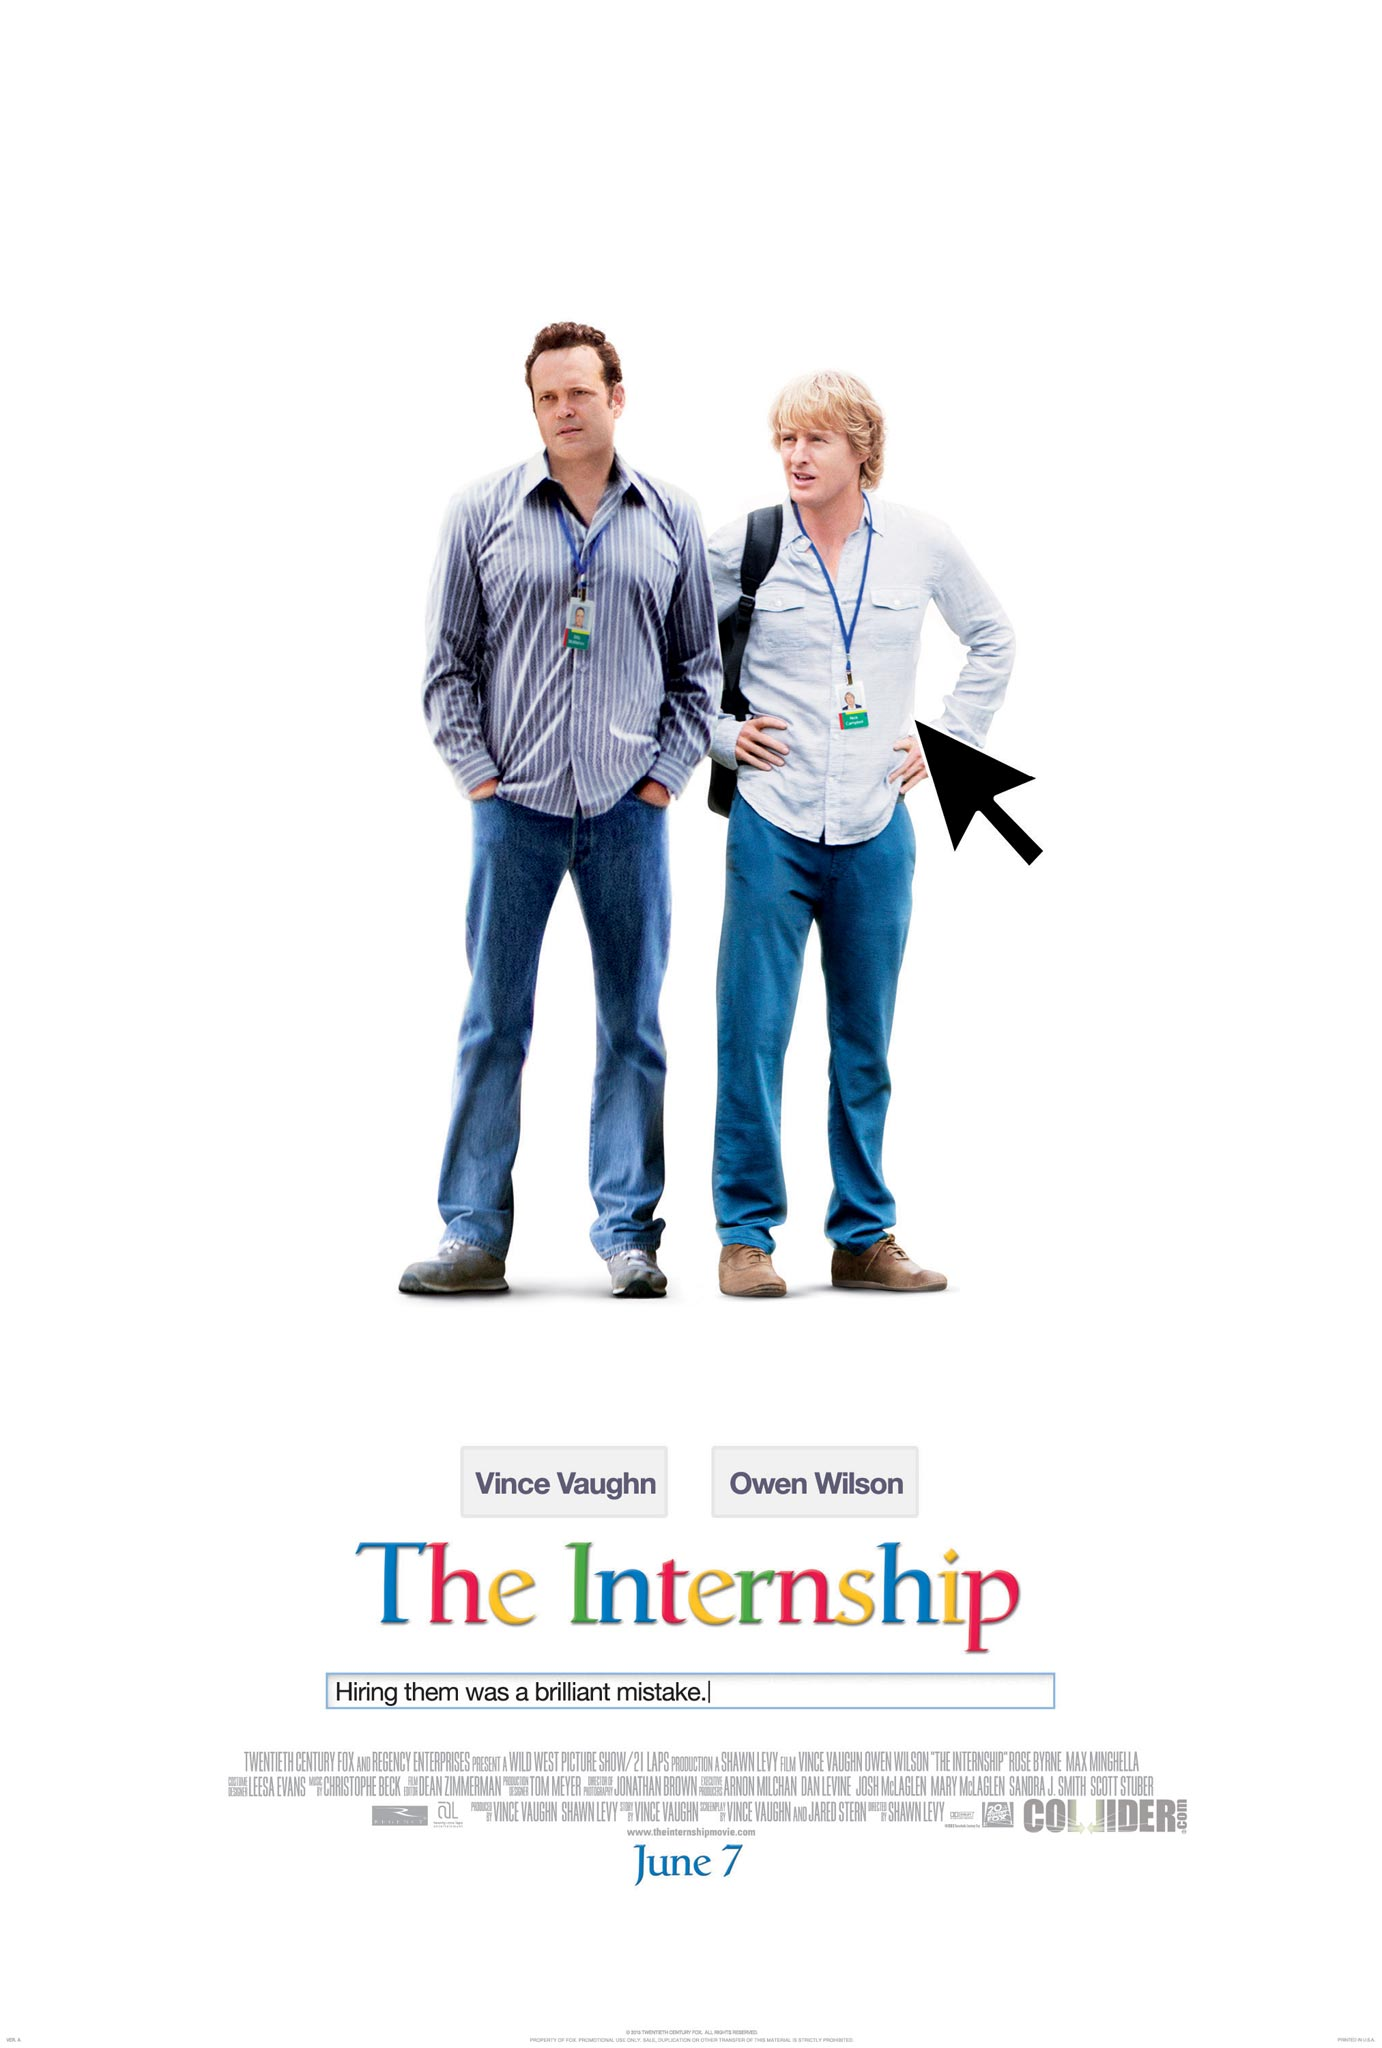 The Internship at Google